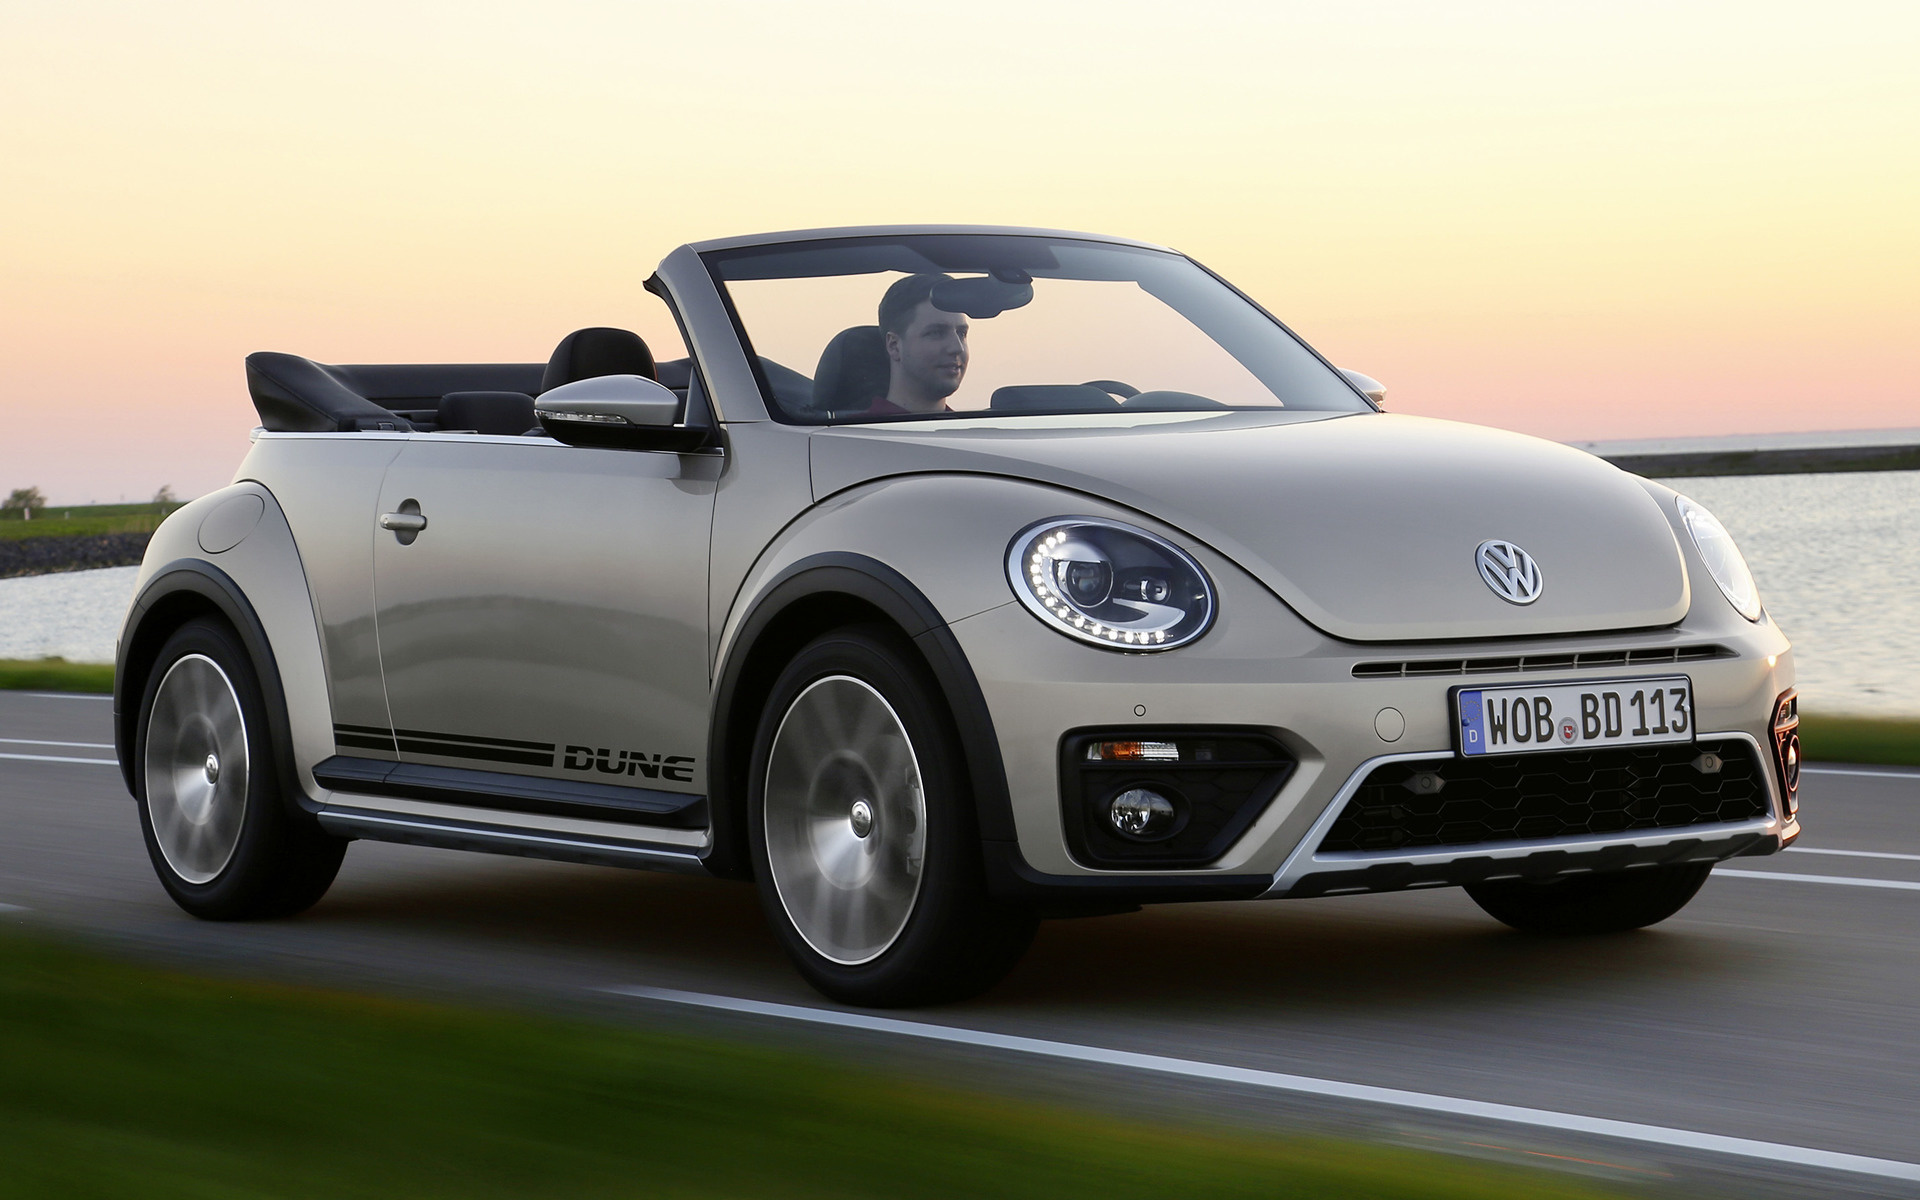 Volkswagen Beetle Convertible >> Volkswagen Beetle Dune Cabriolet (2016) Wallpapers and HD ...